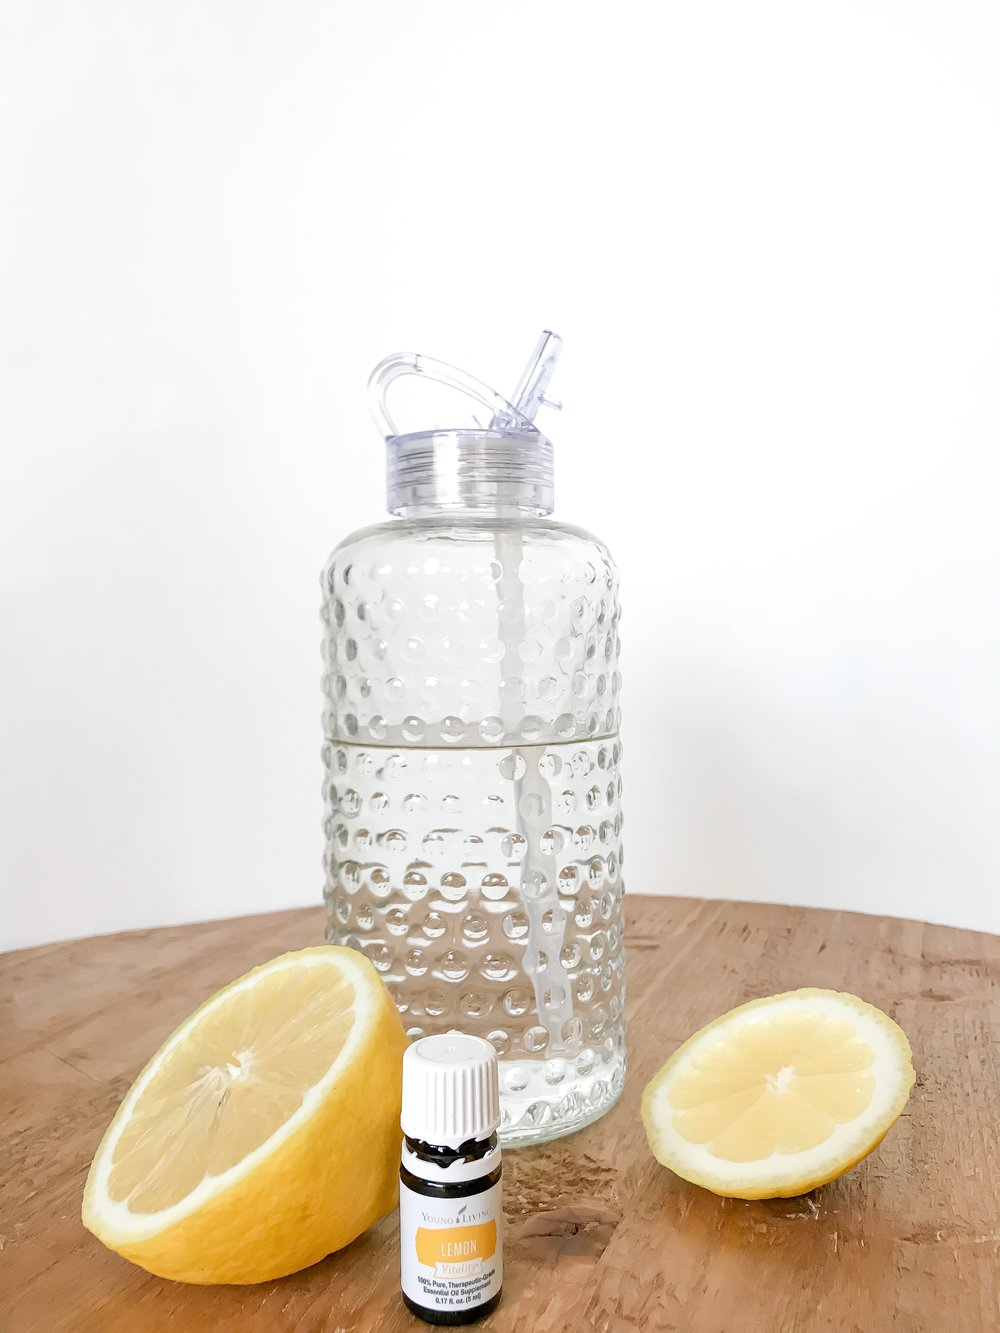 Lemon Vitality oil in your drinking water for a refreshing mid day pick me up!